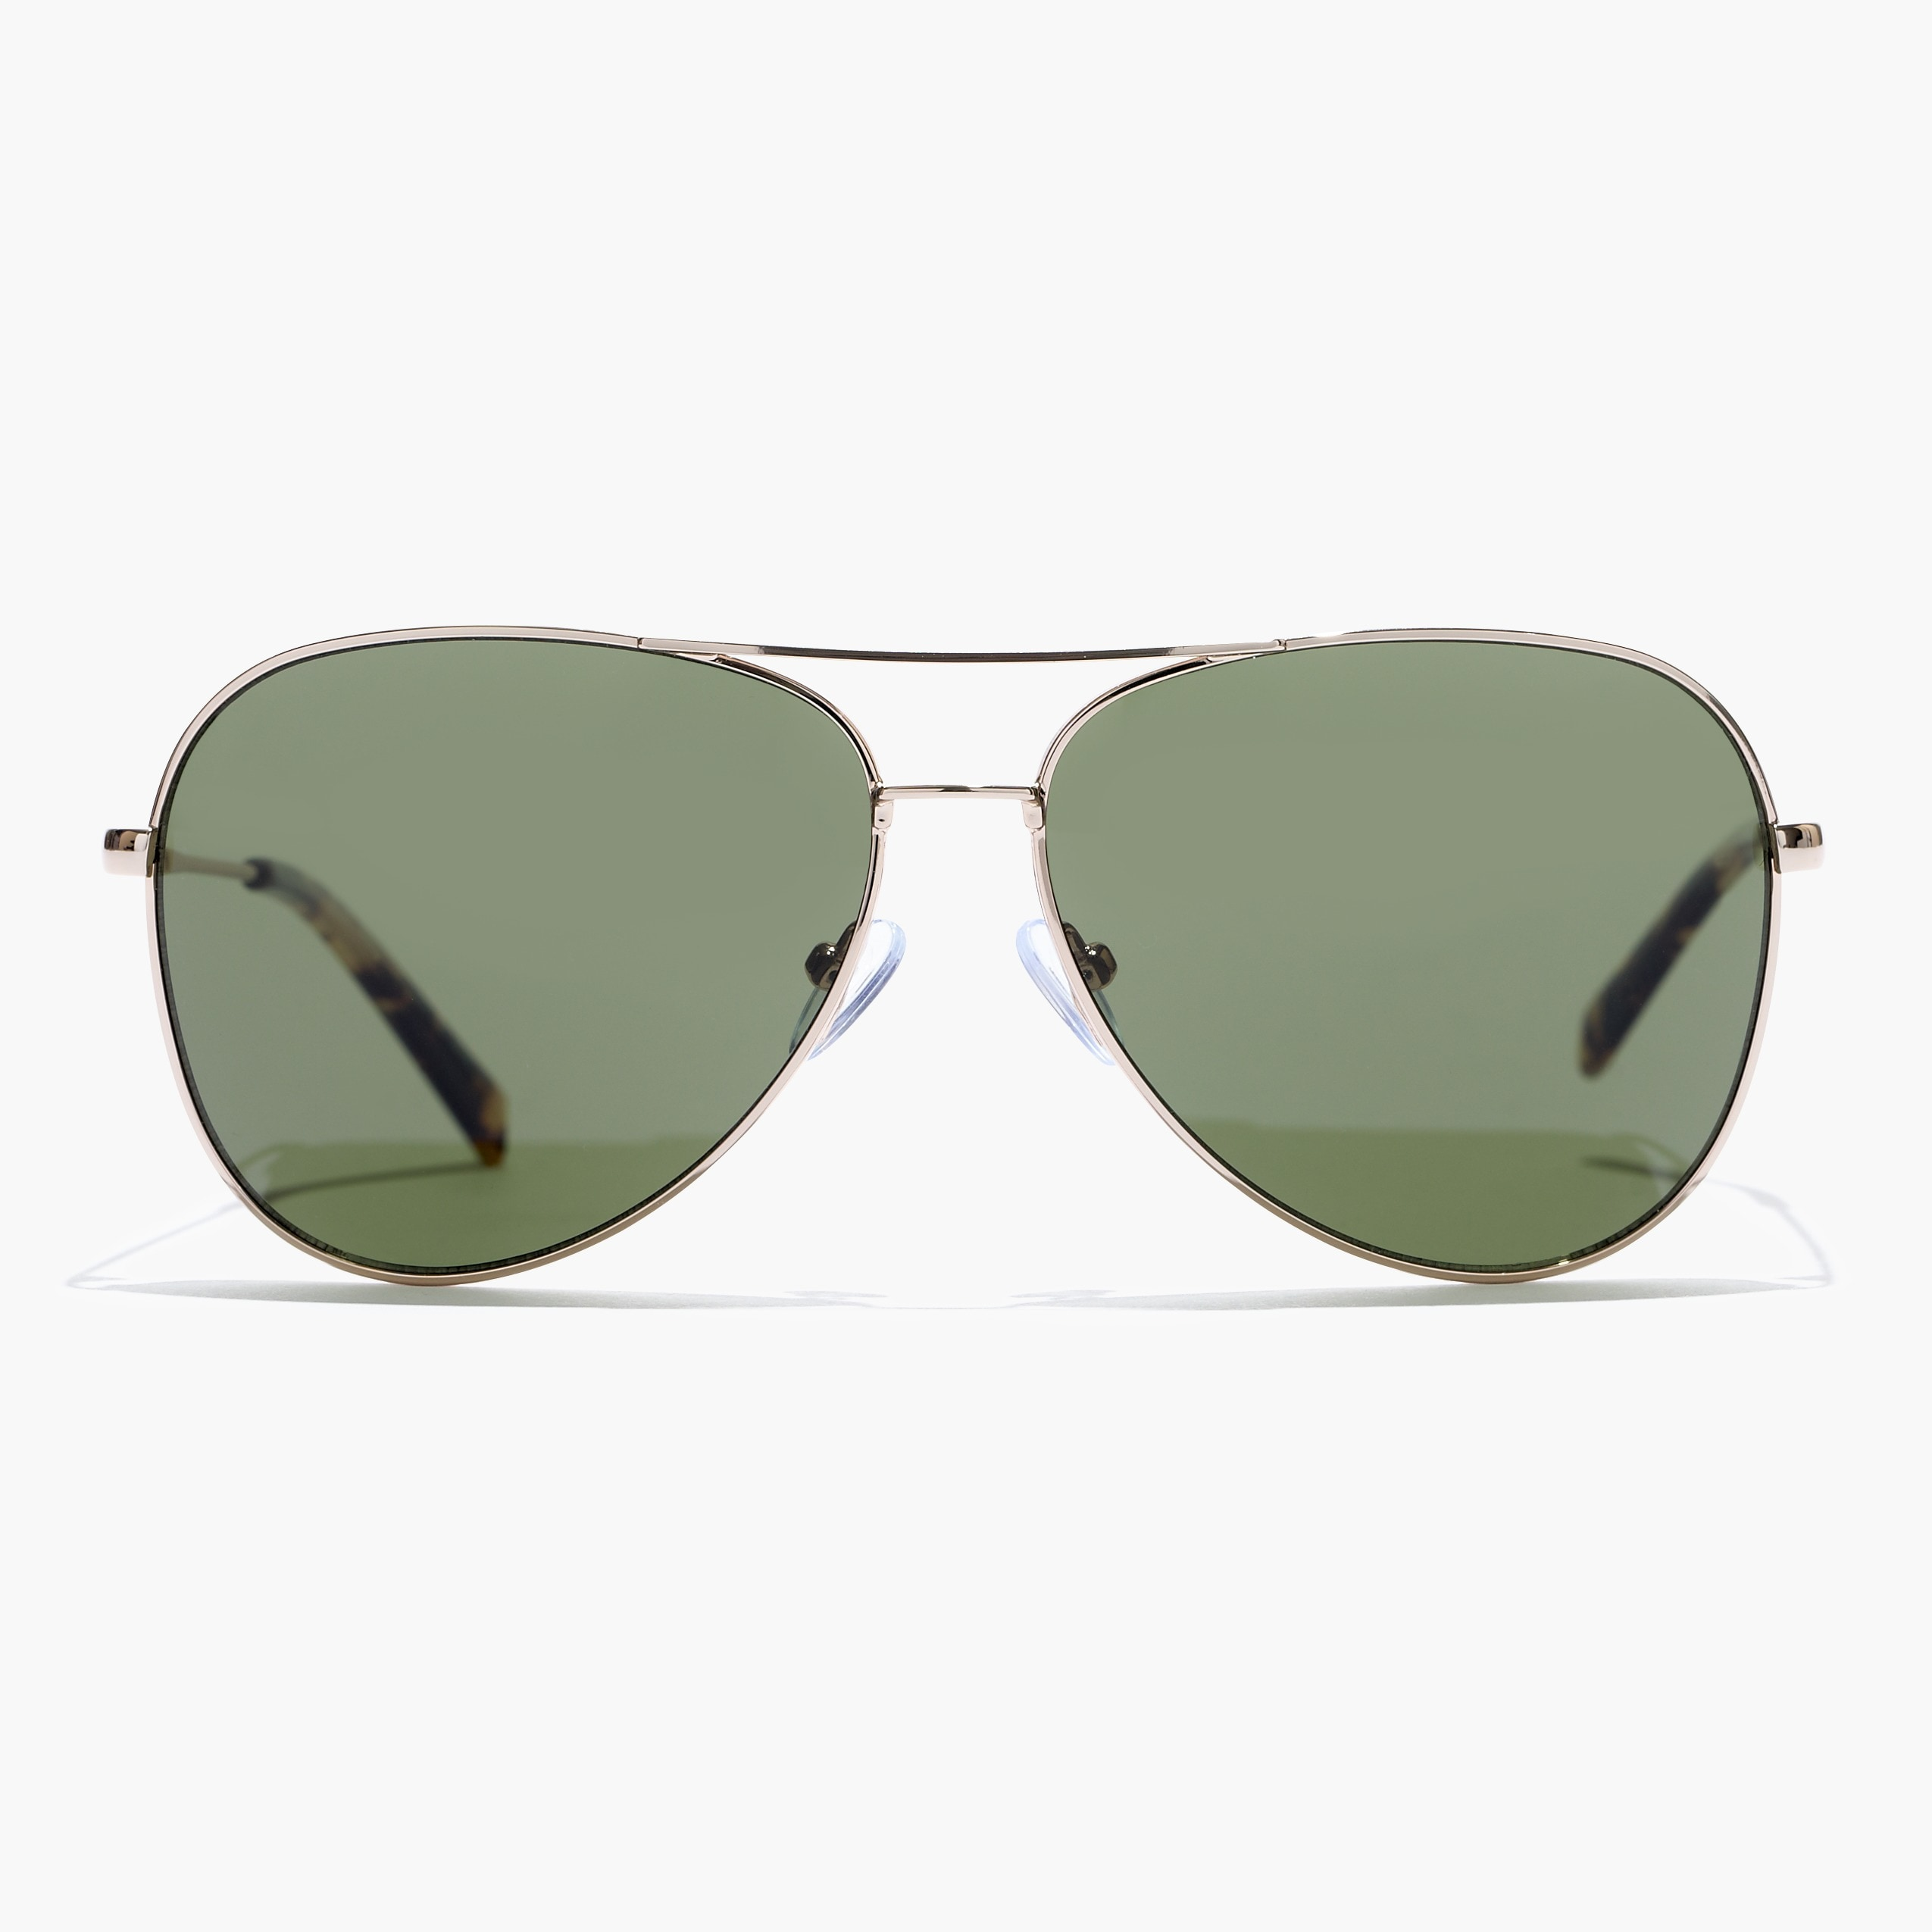 jack sunglasses : men's sunglasses